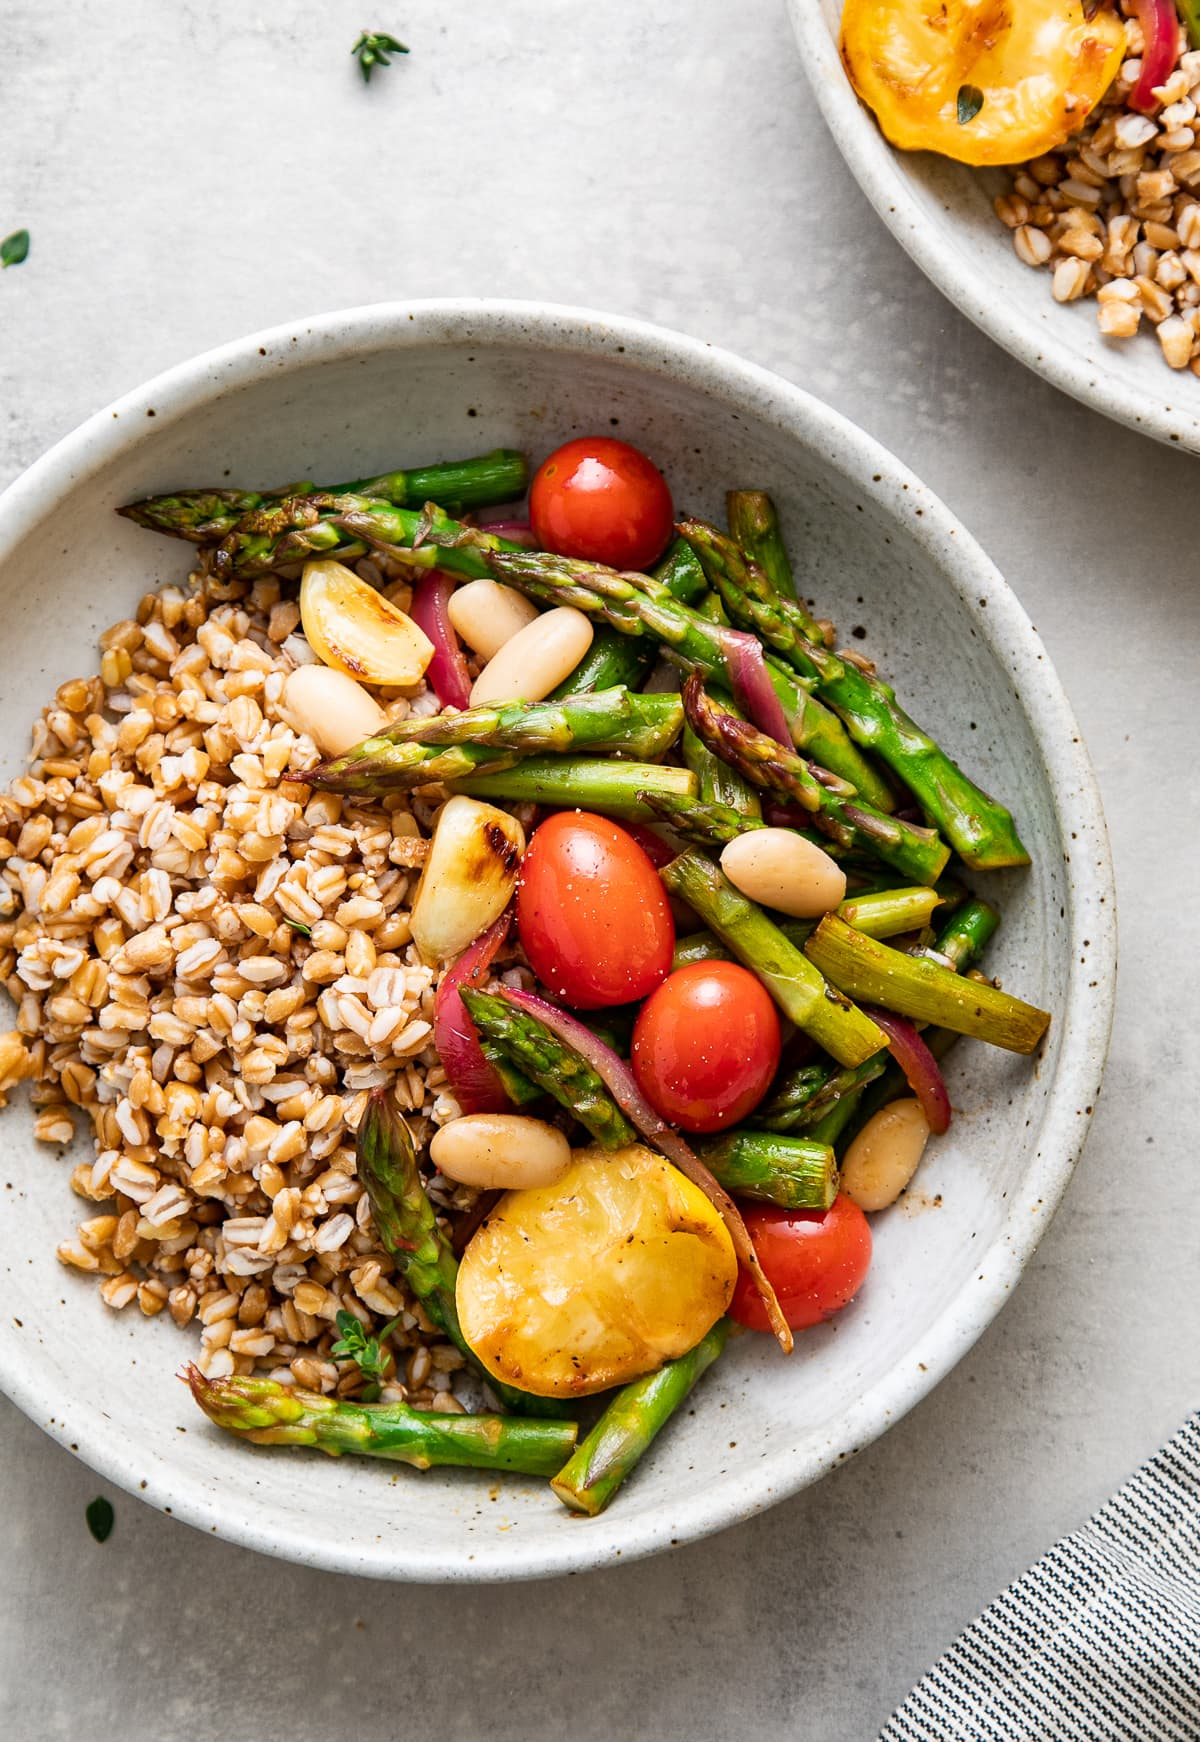 up close, top down view of a bowl with serving of skillet asparagus and tomato medley with farro and items surrounding.